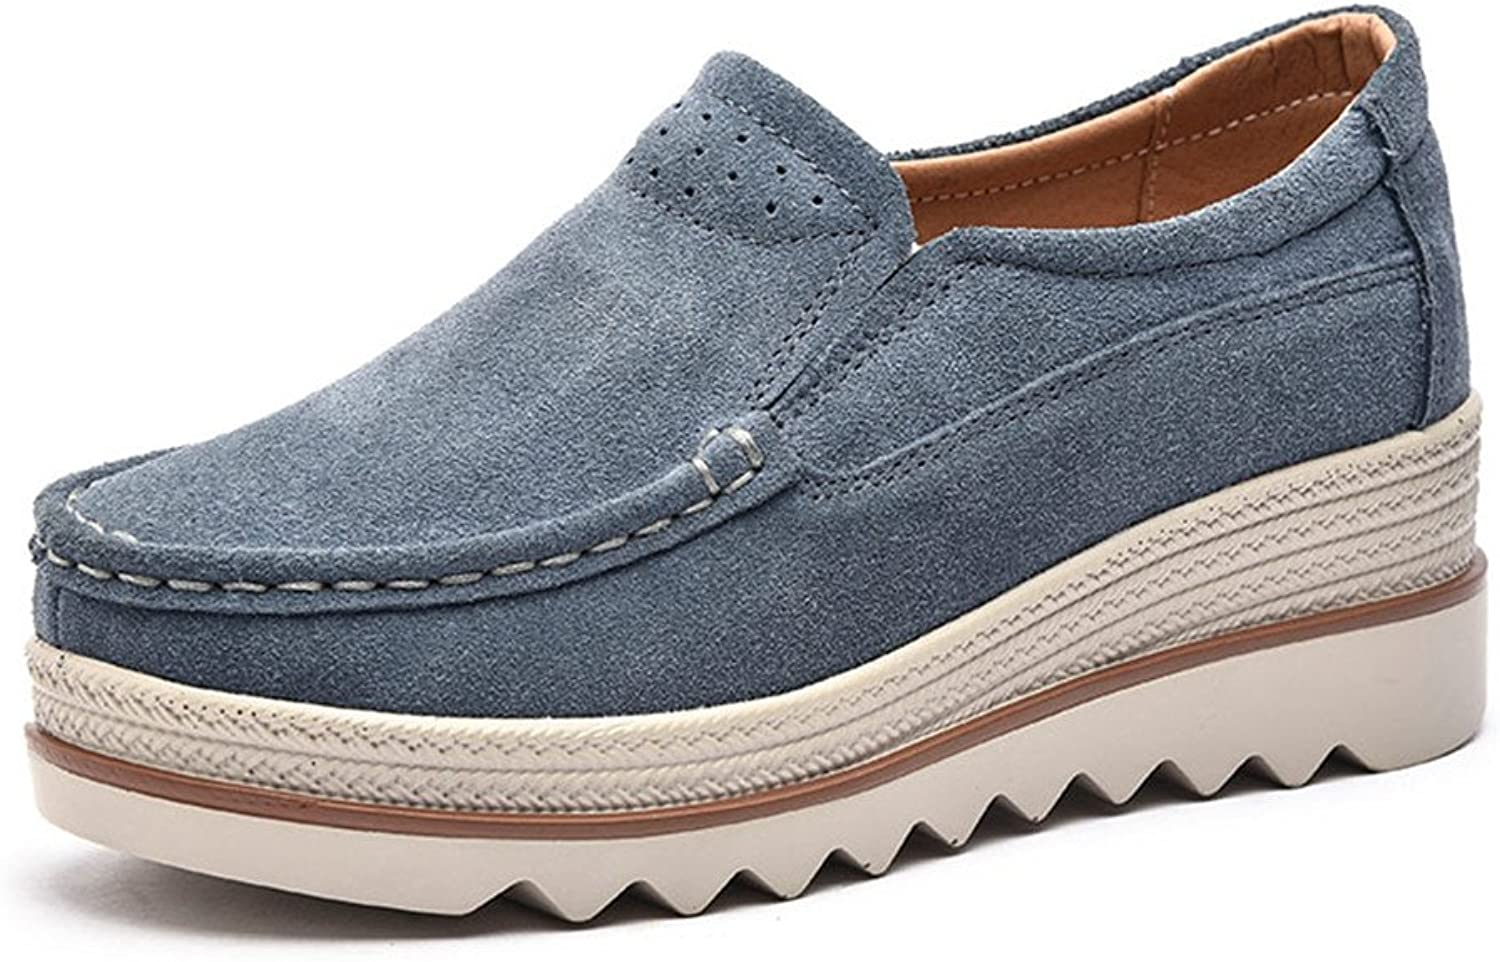 Ruiatoo Women's Leather Platform Slip on Loafers Comfort Moccasins Low Top Casual shoes bluee Grey 42